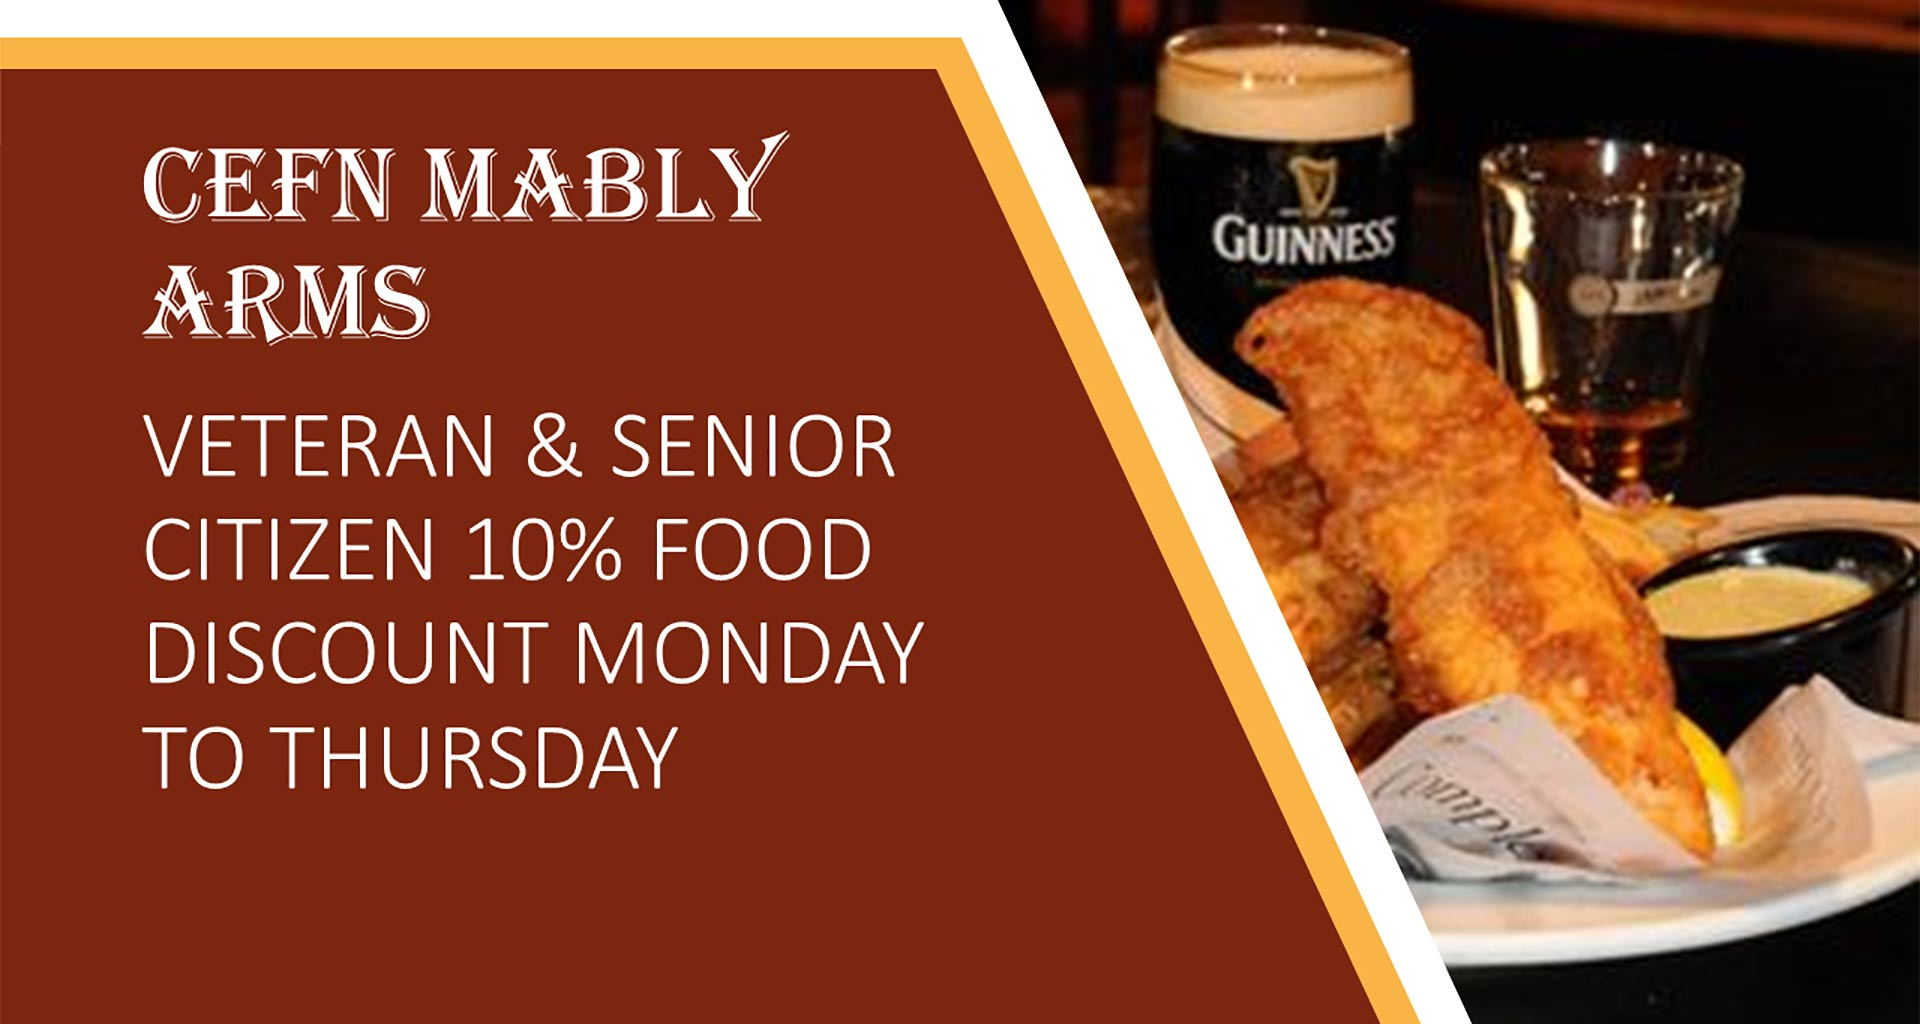 Cefn Mably Arms Senior Citizen Deal